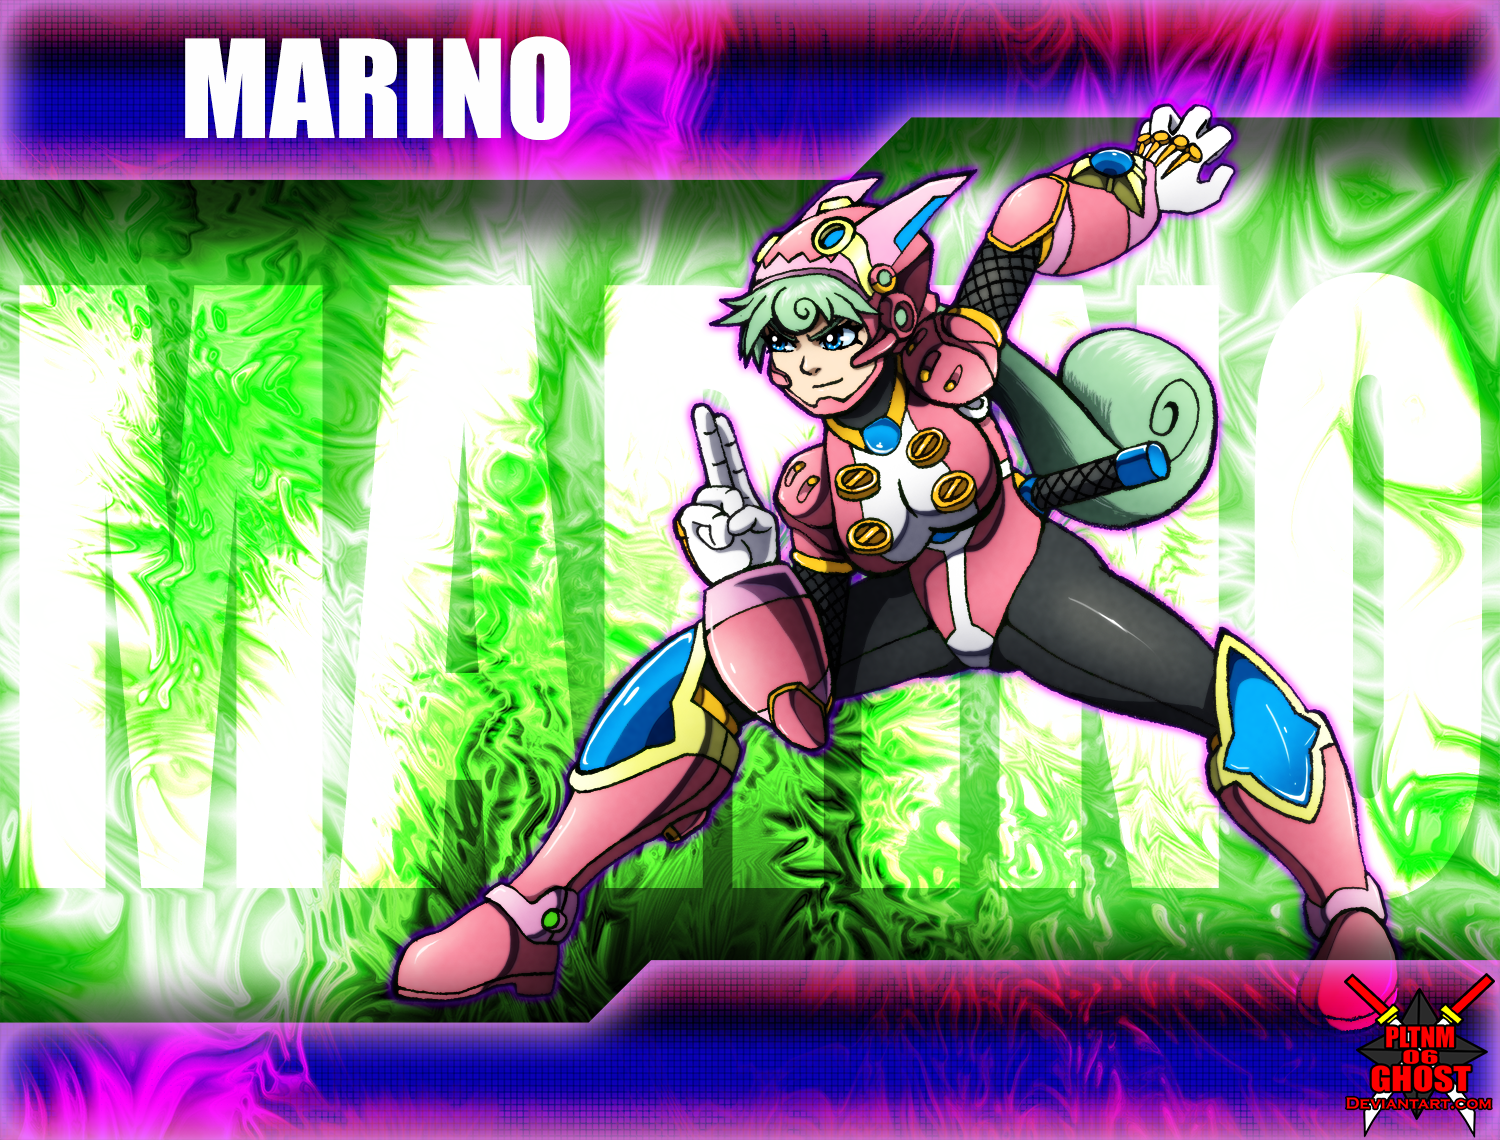 Marino by Pltnm06Ghost